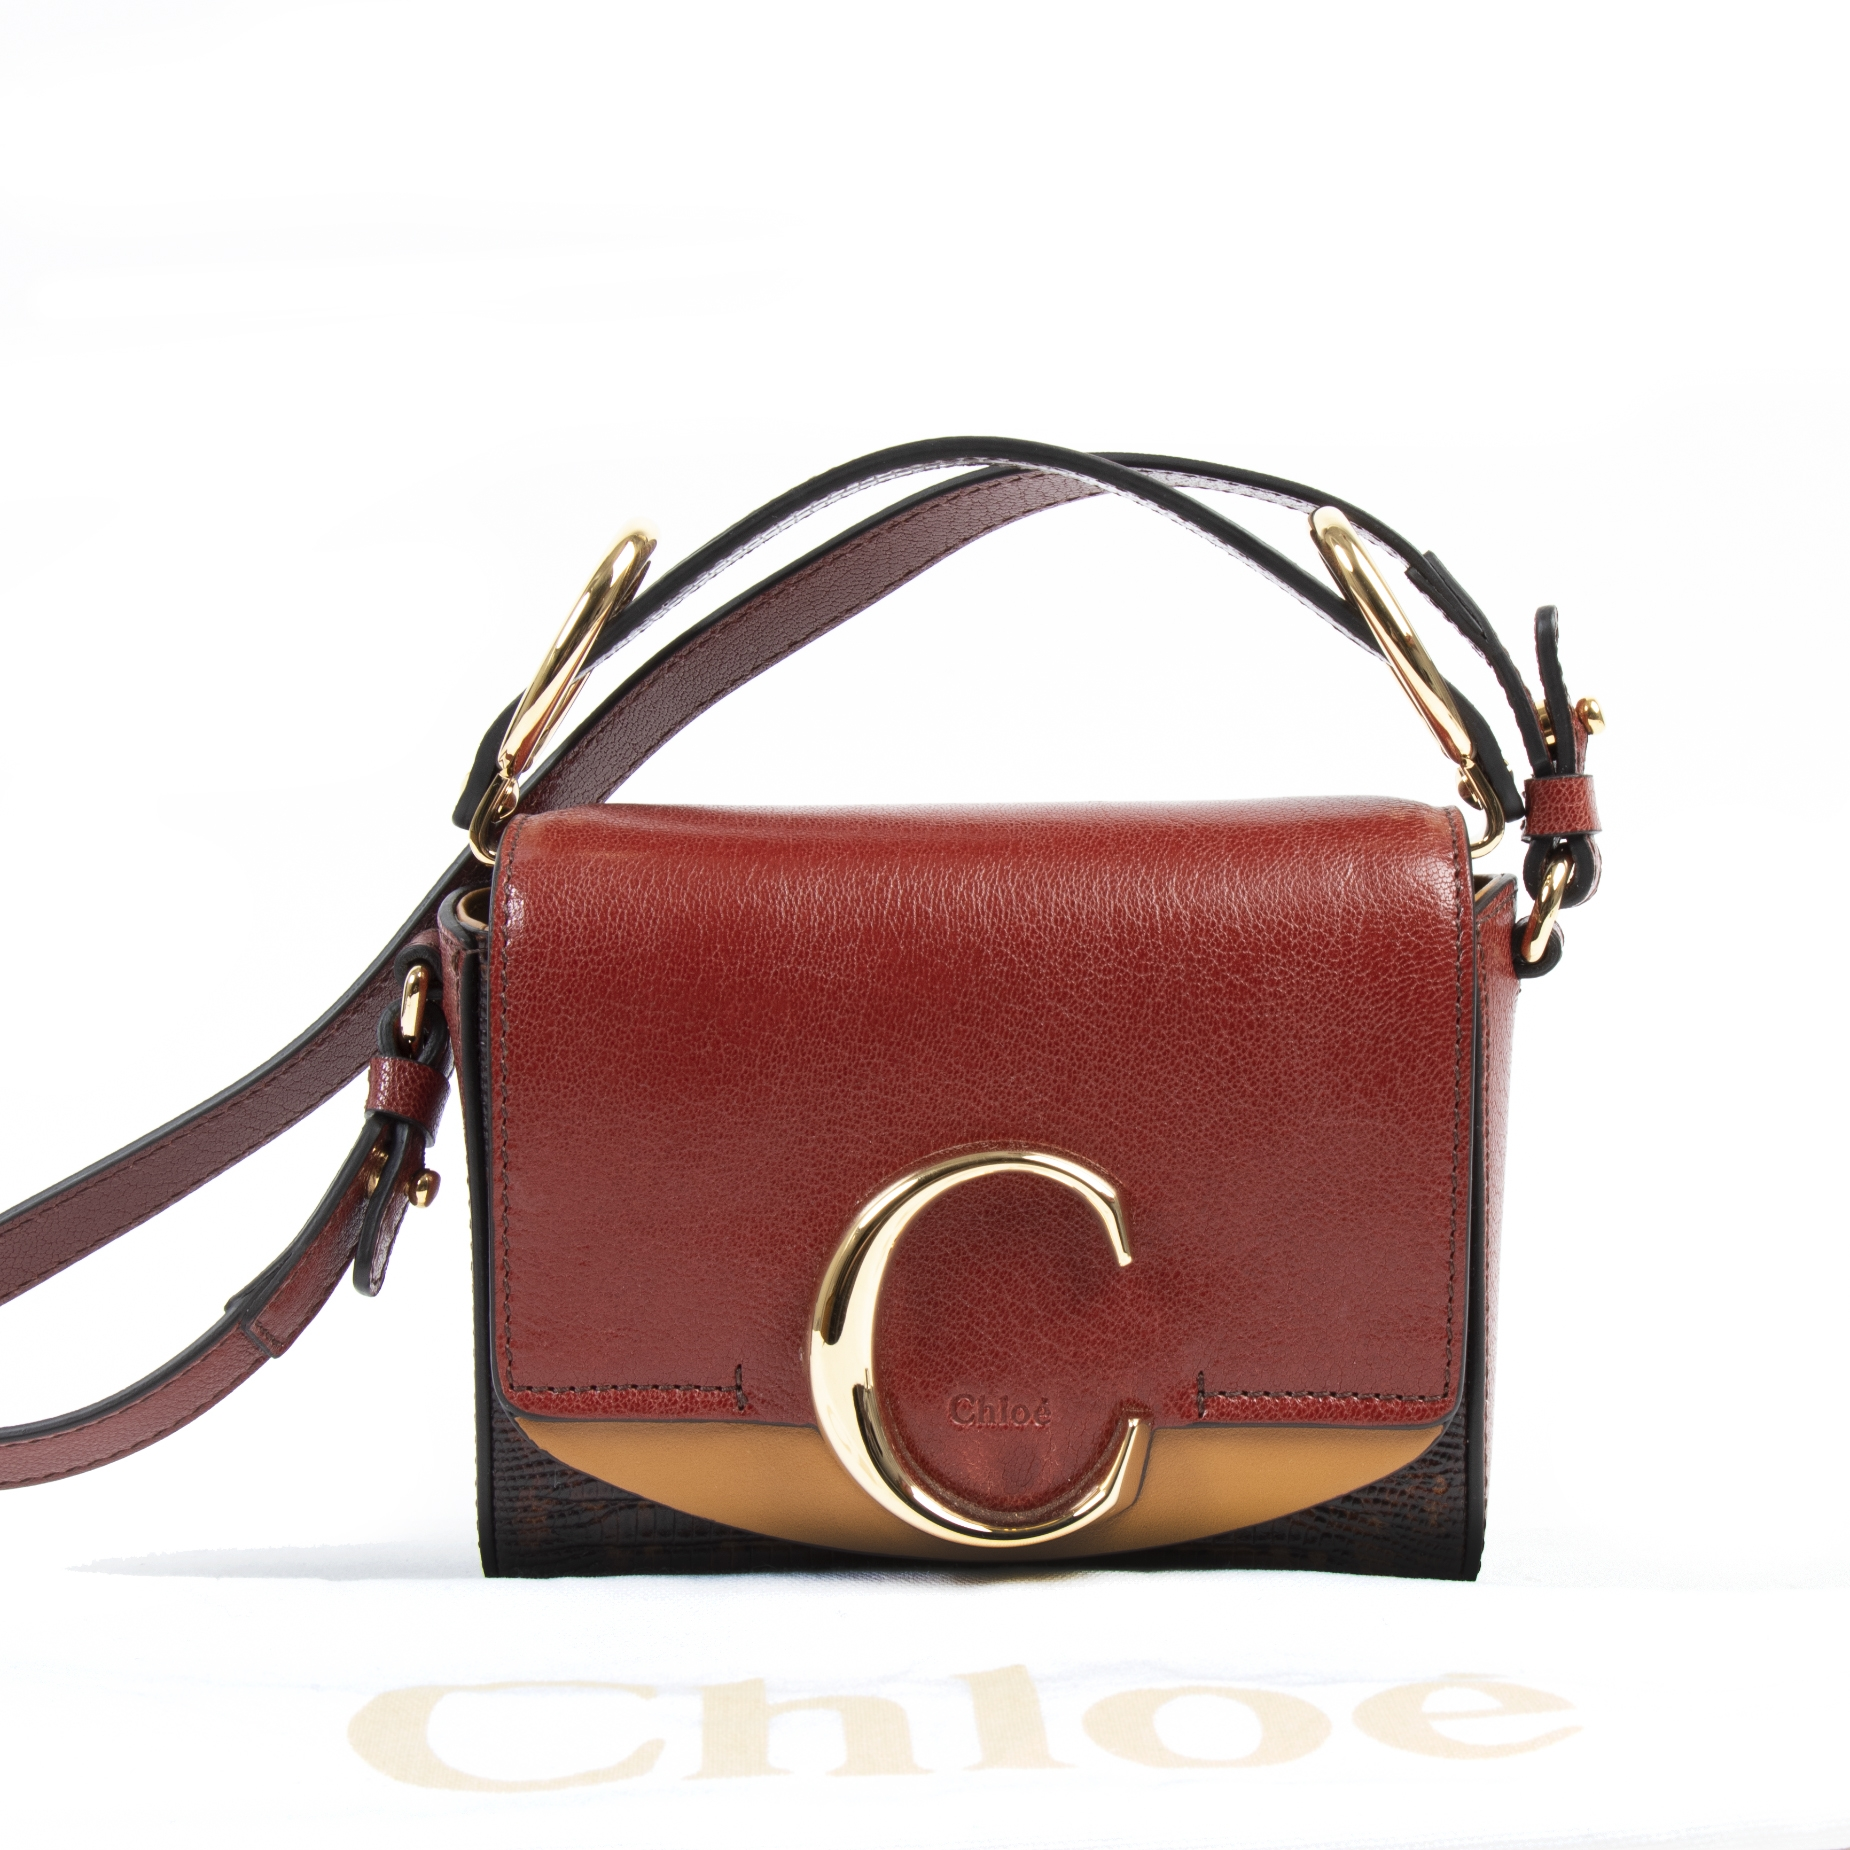 Chloé C Small Crossbody Sepia Red Bag